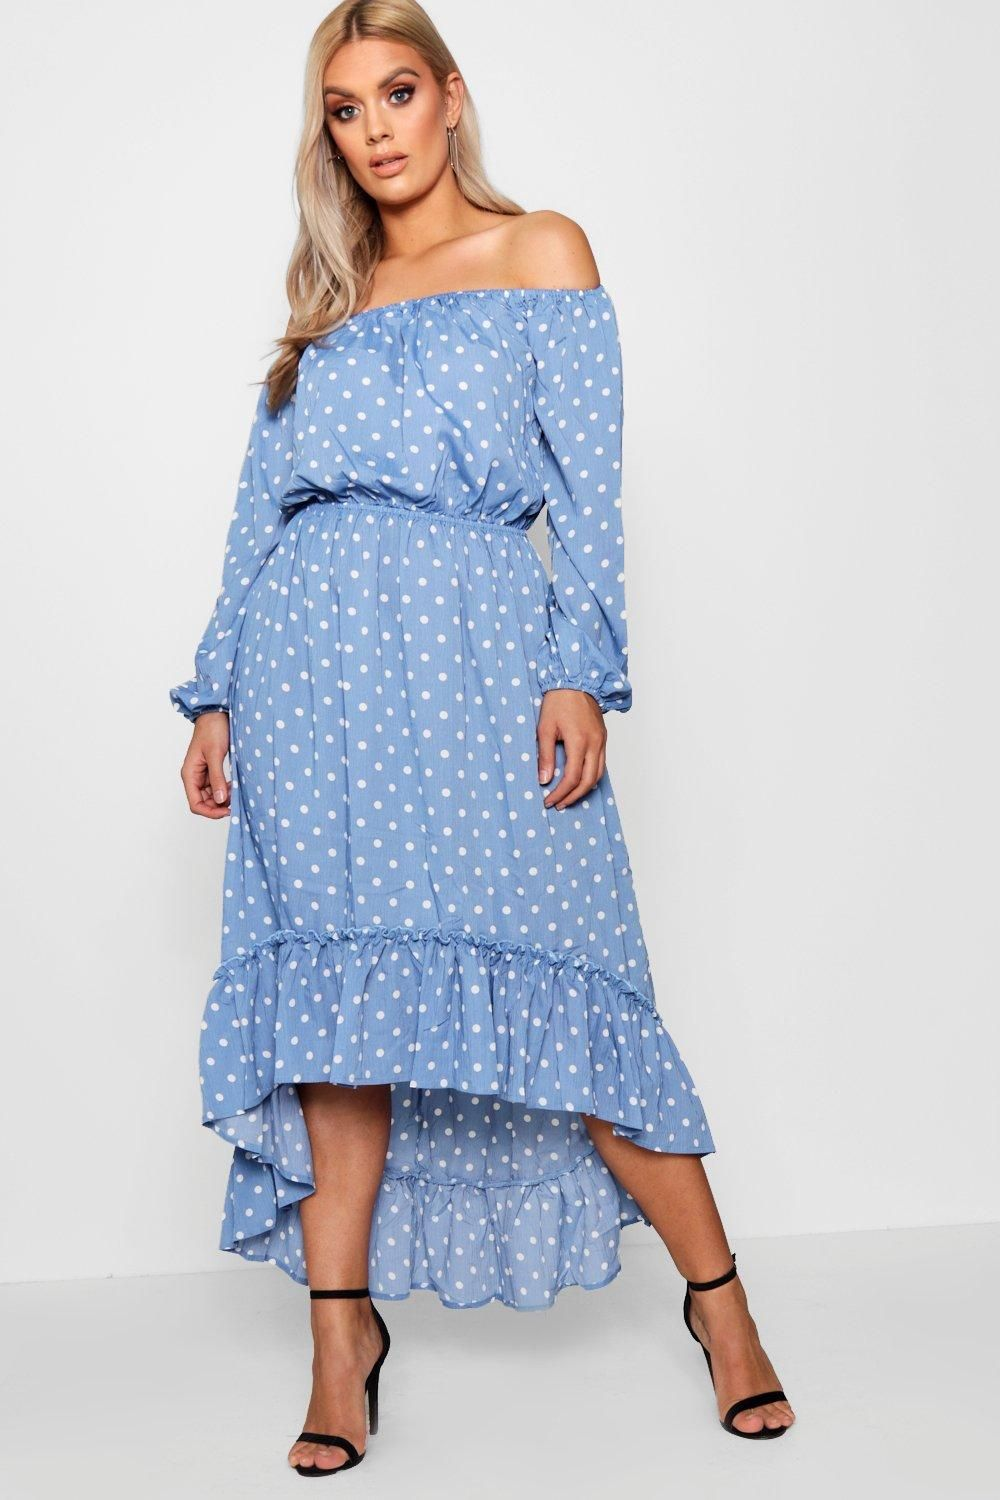 75f04aff61 Click here to find out about the Plus Spotty Ruffle Off Shoulder Maxi Dress  from Boohoo, part of our latest Plus Size & Curve Clothing collection ready  to ...